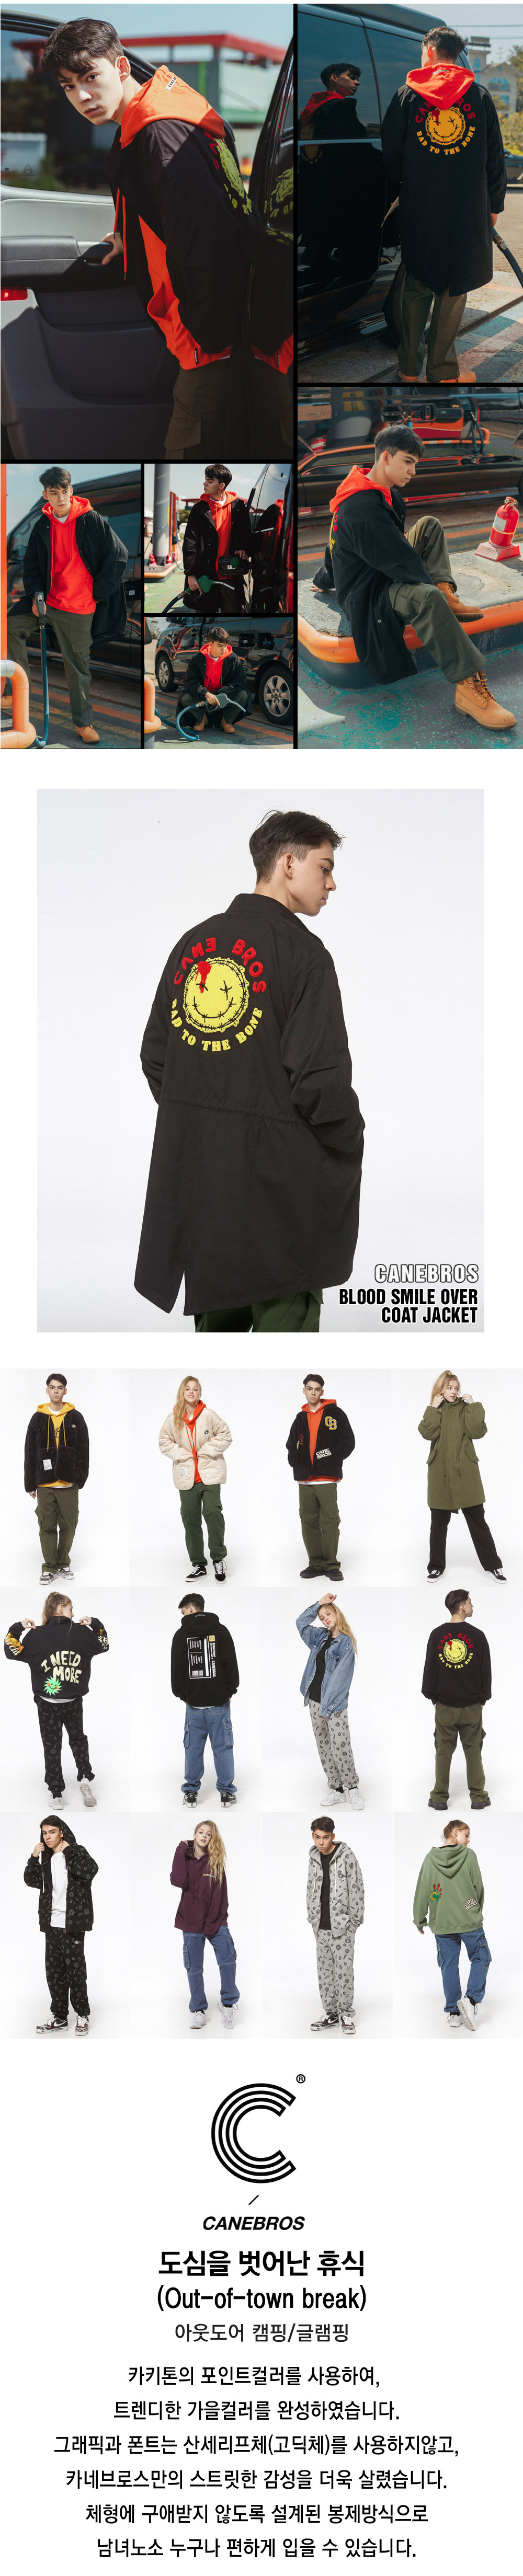 BLOOD-SMILE-WILDERNESS-COAT-JACKET-BK_01.jpg